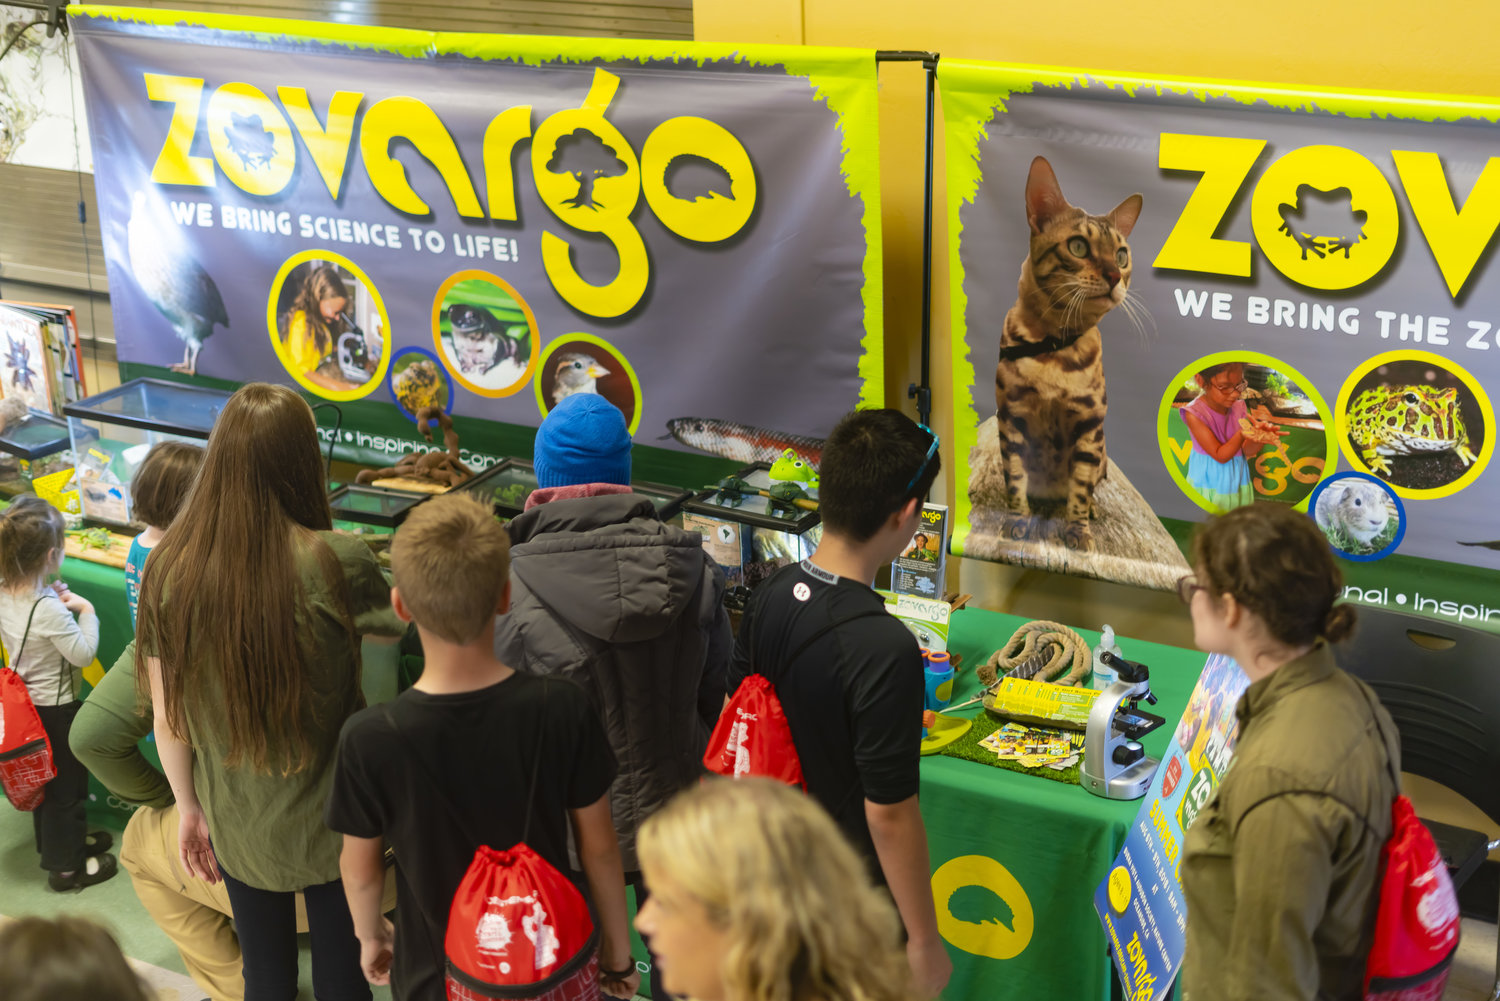 Community partner Zovargo promotes STEM in Your Backyard